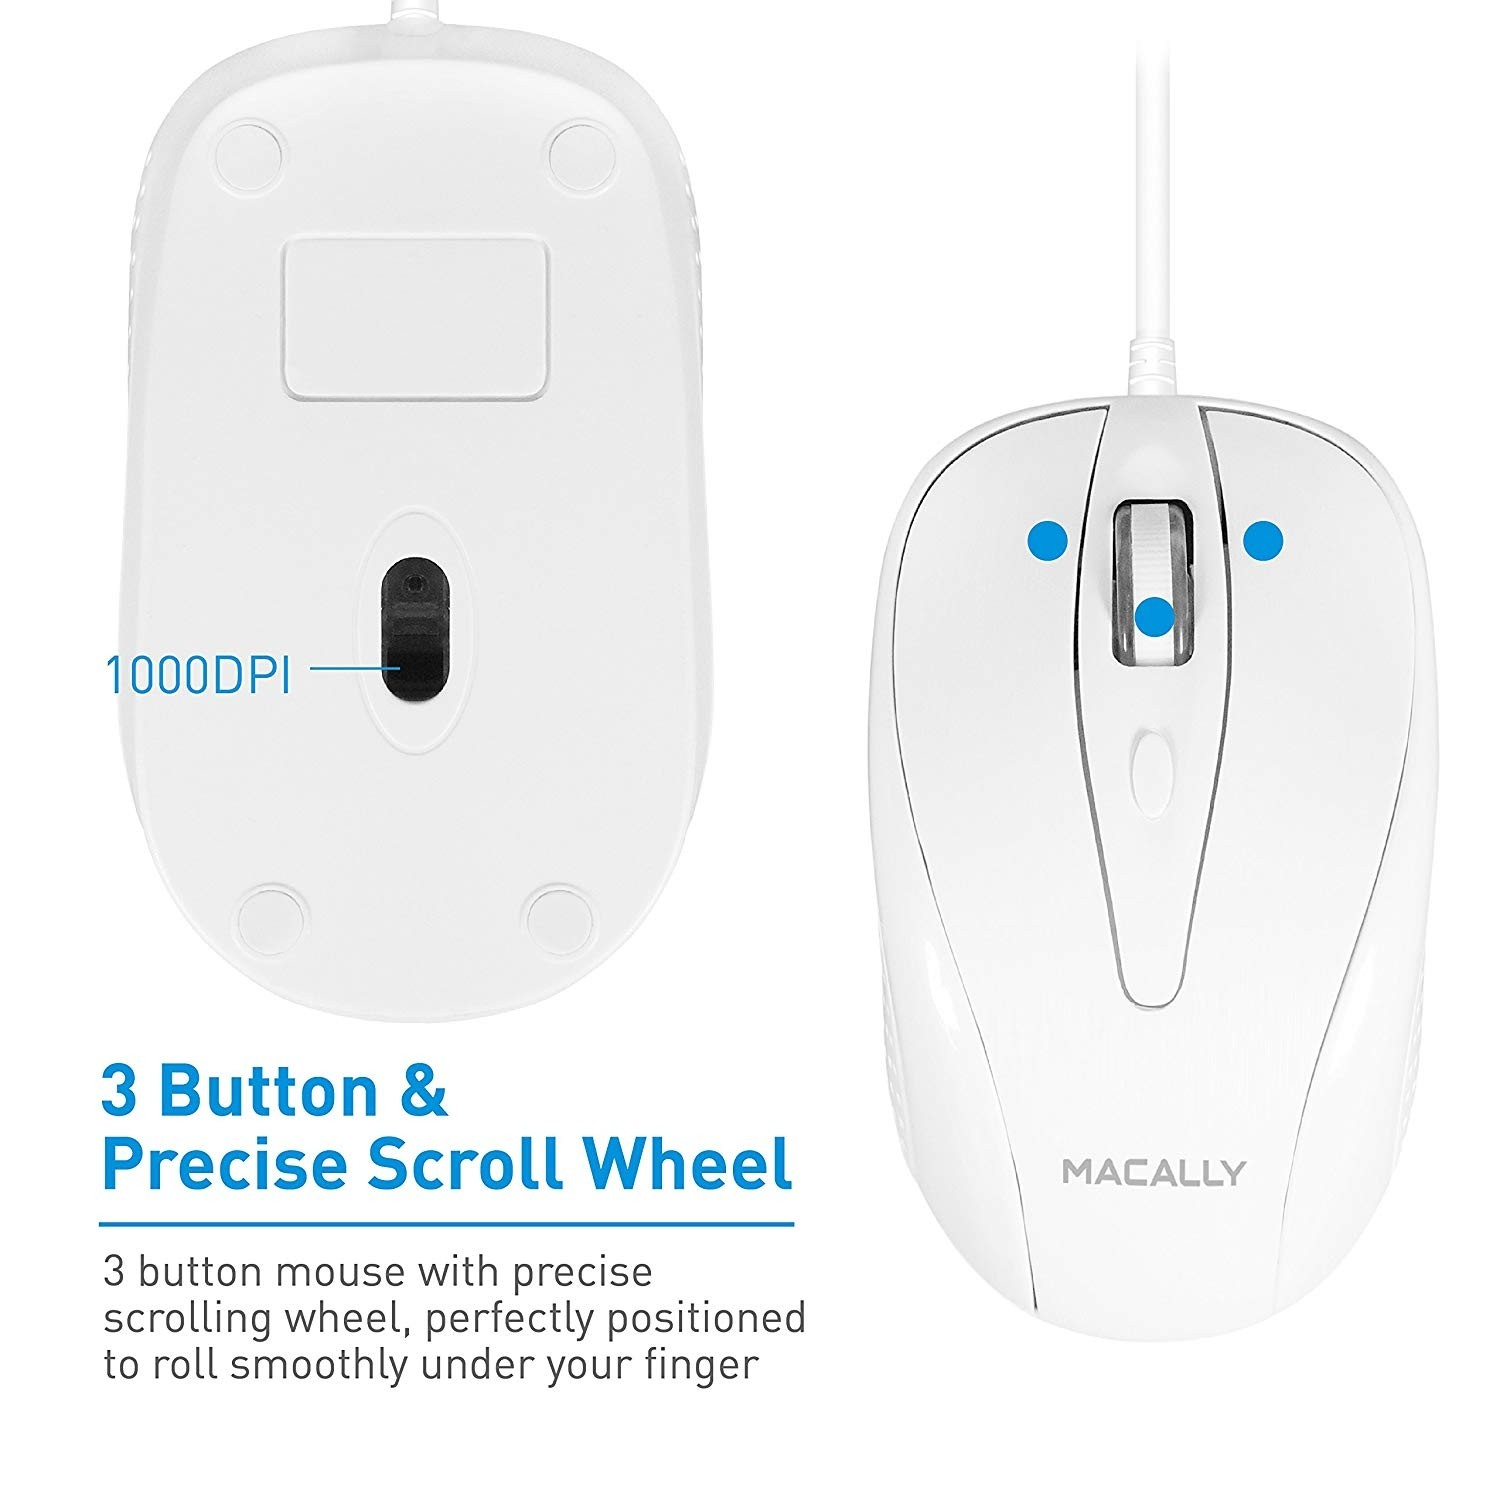 Macally USB Wired Mouse with 3 Button, Scroll Wheel, & 5 Foot Long Cord, Compatible with Apple Macbook Pro / Air, iMac, Mac Mini, Laptops, Desktop Computer, & Windows PC - White, TURBO